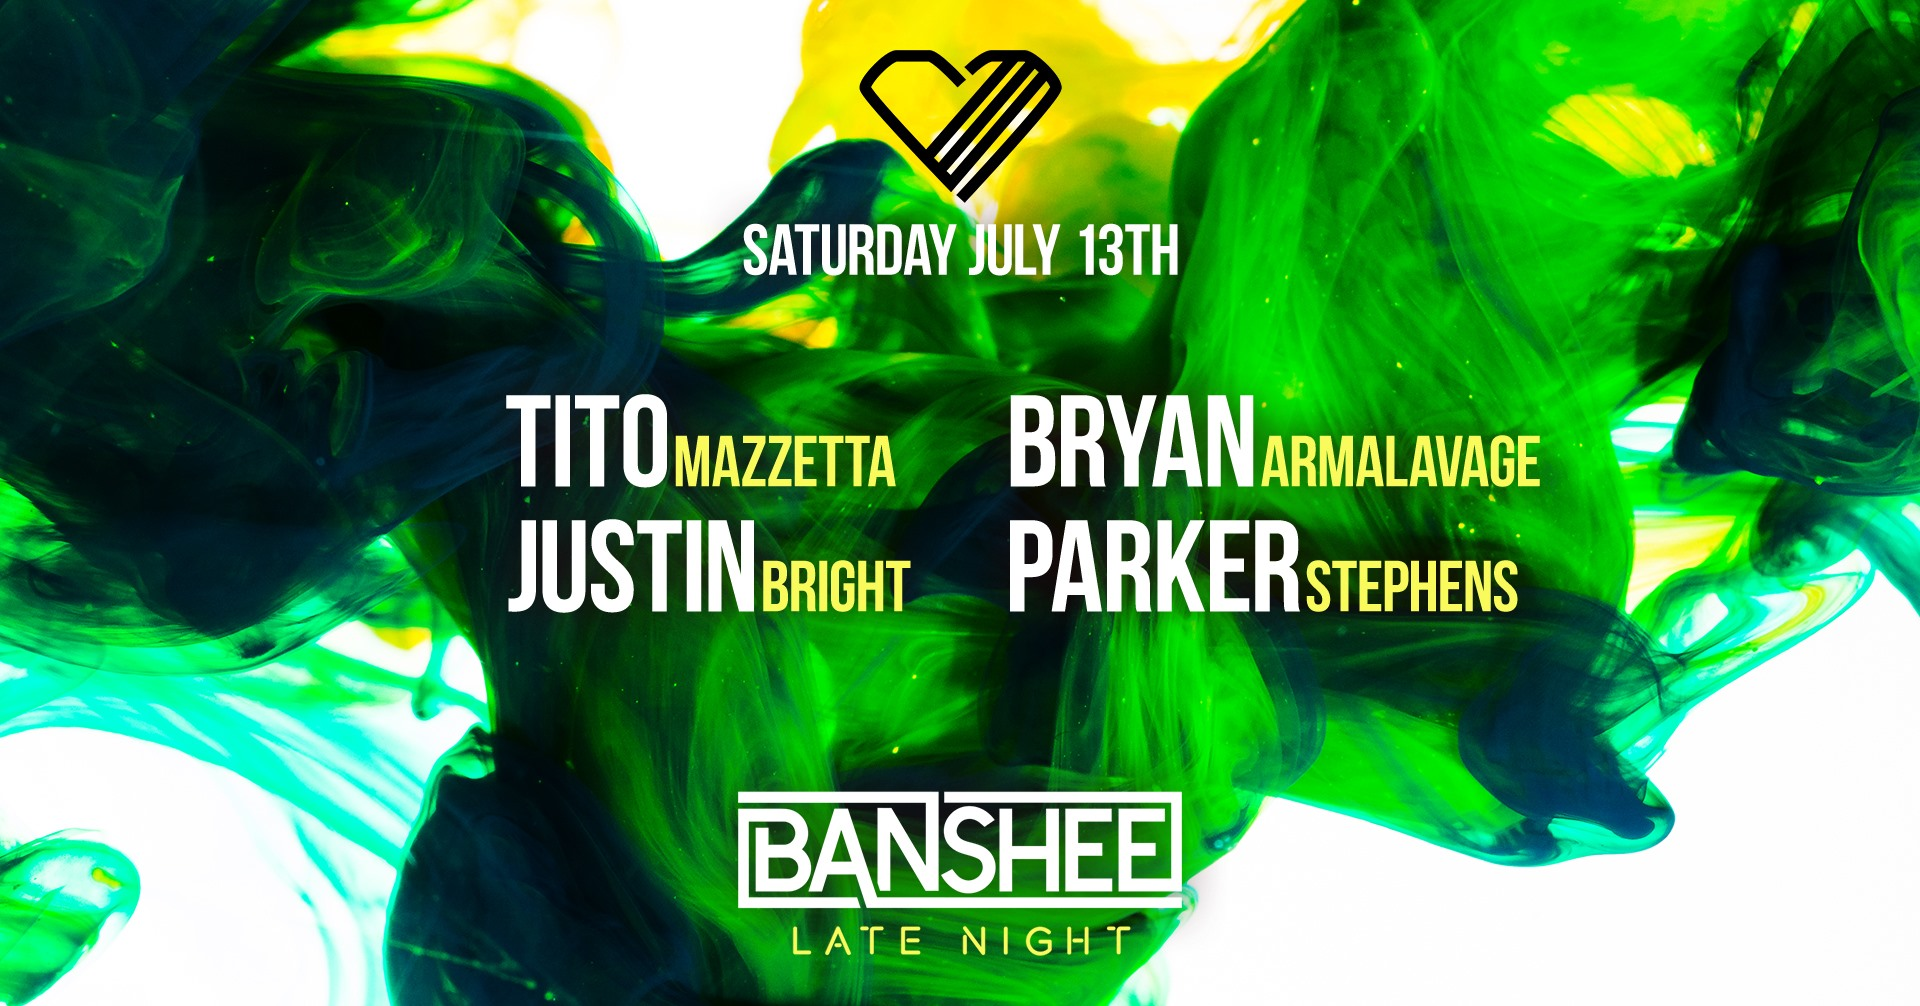 BANSHEE LATE NIGHT - SUMMER RESIDENTS SHOWCASE